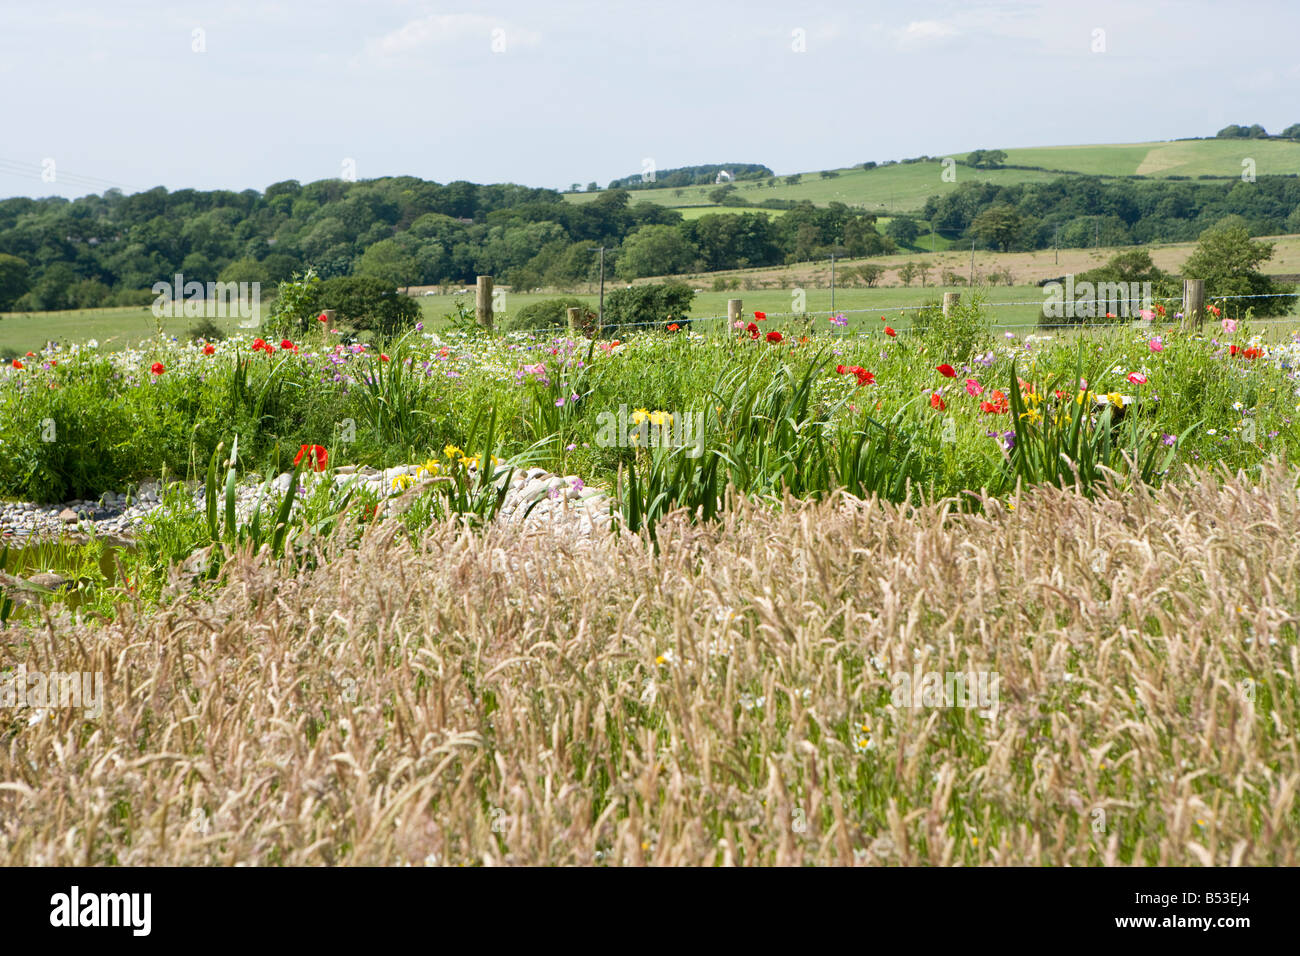 uncut lawn with long grass and poppies. - Stock Image